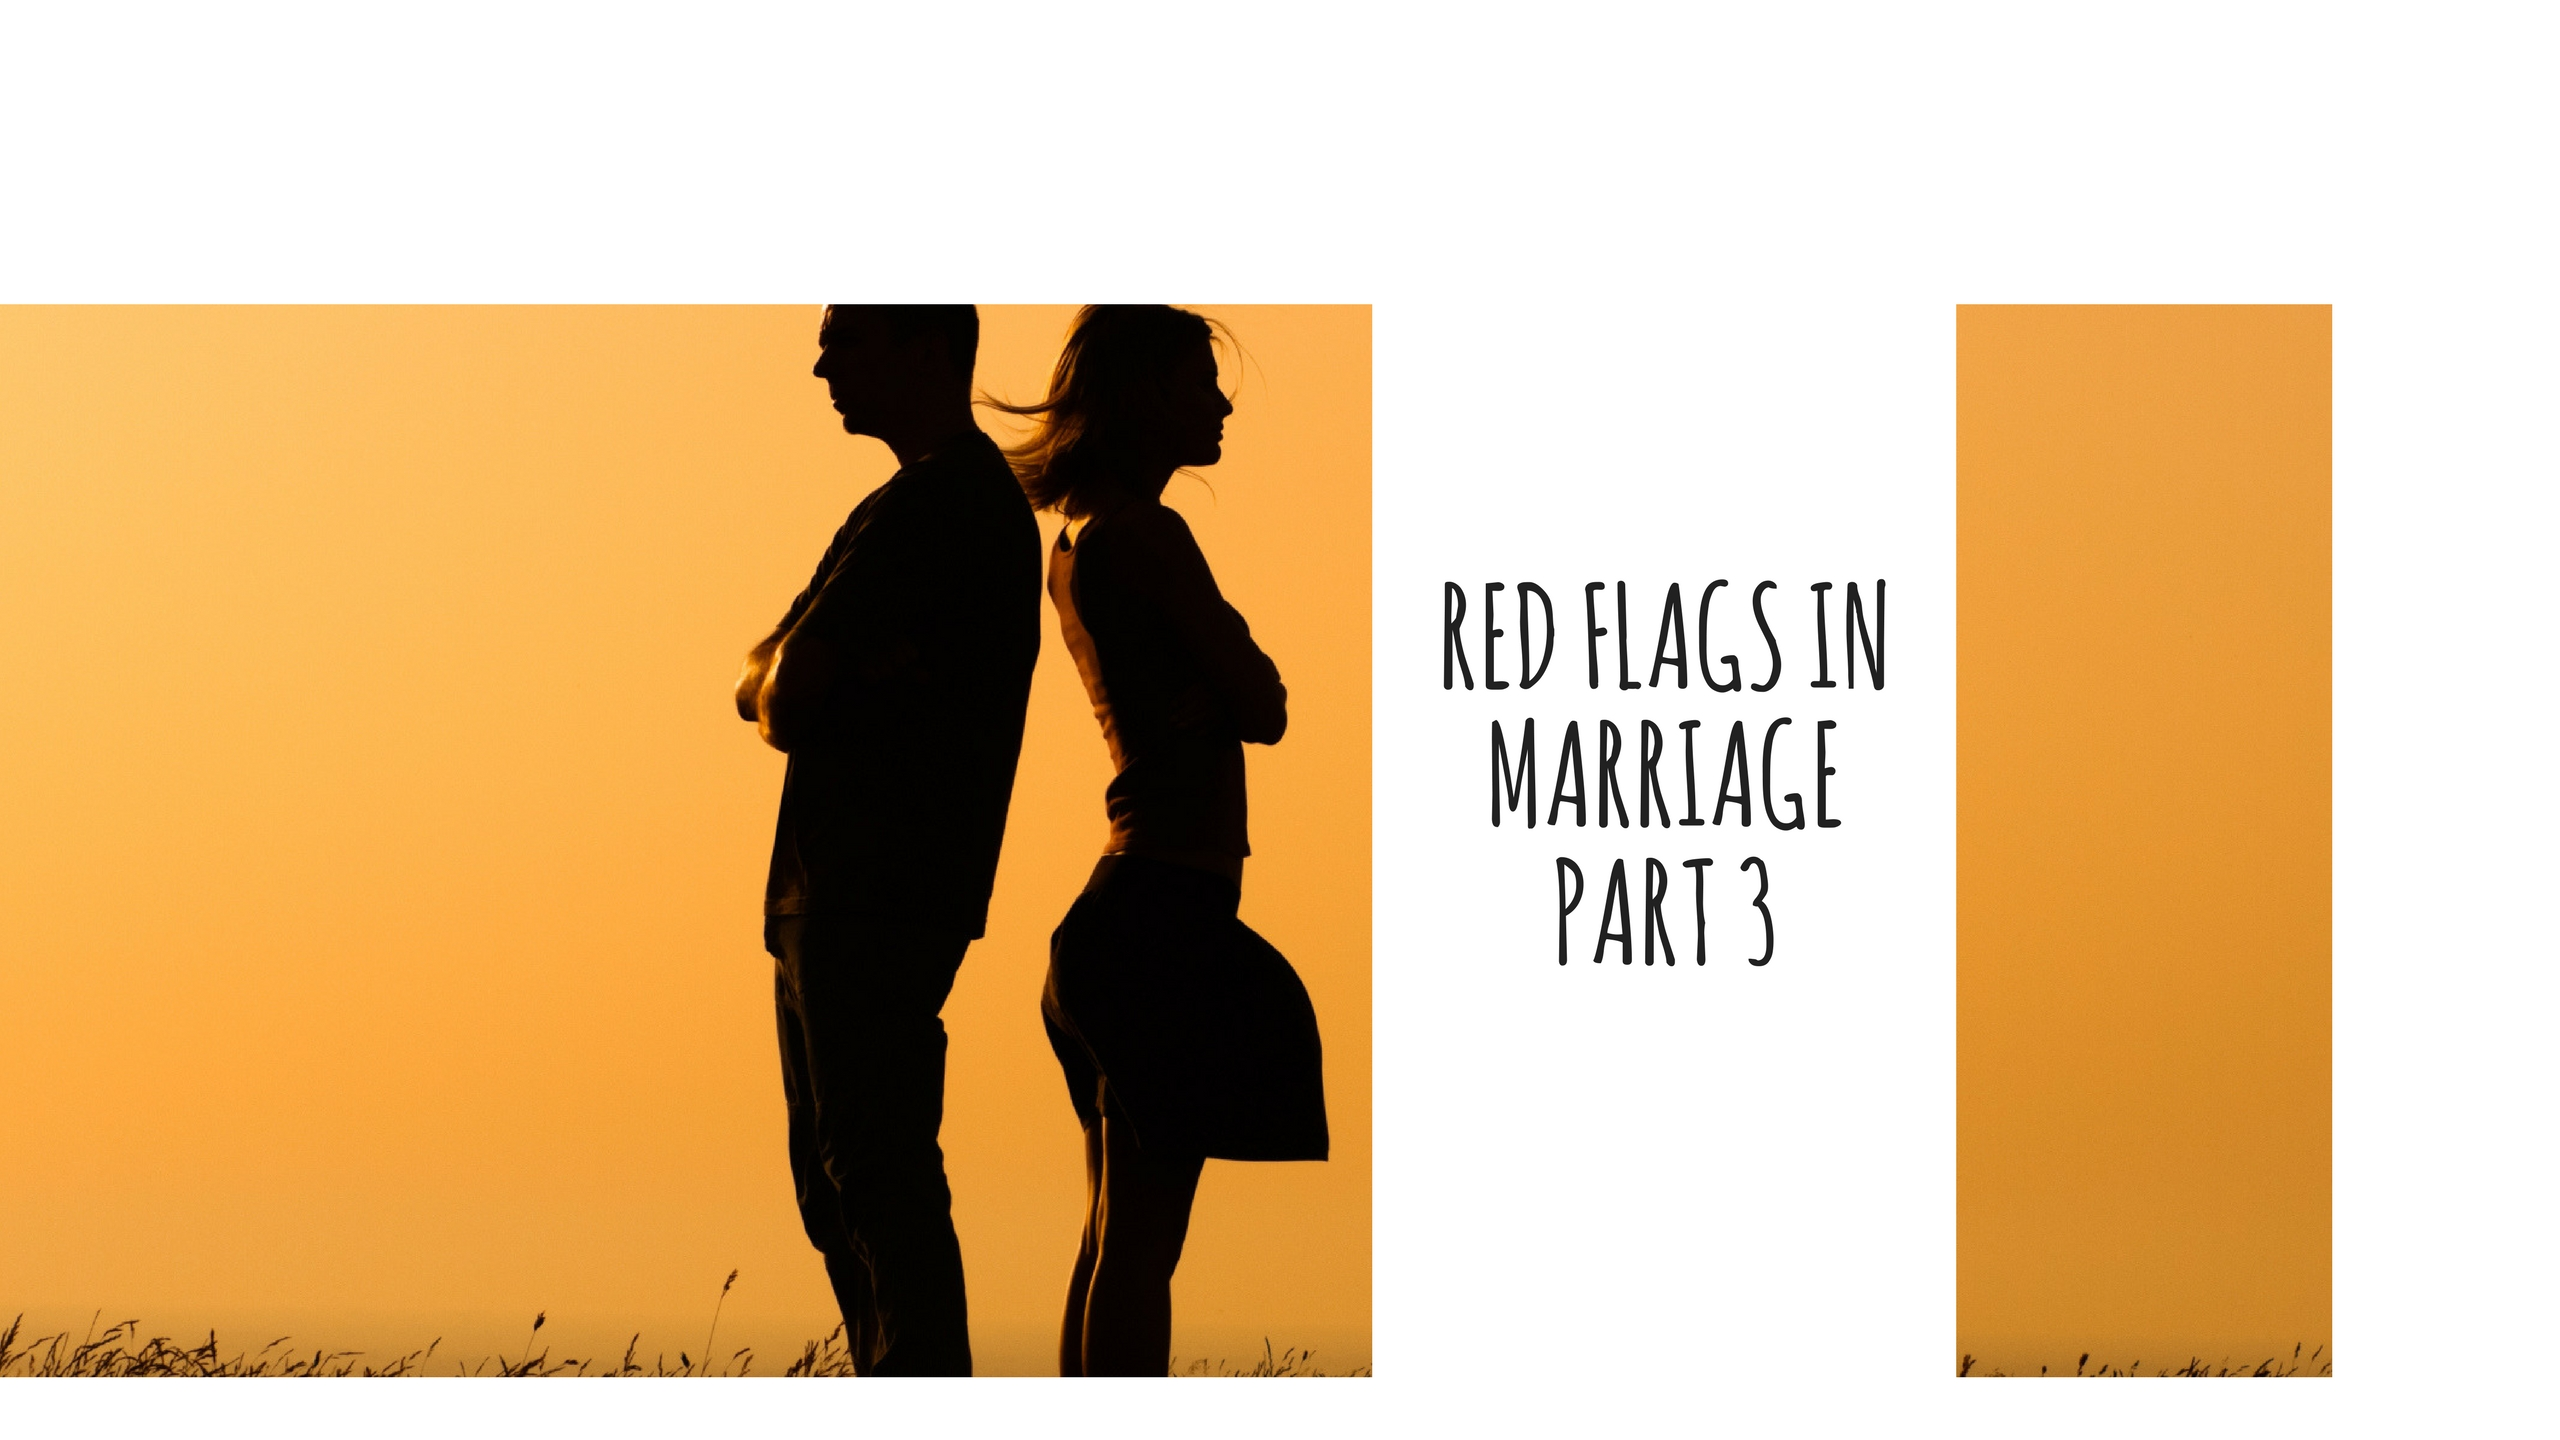 RED FLAGS IN MARRIAGE- PART 3